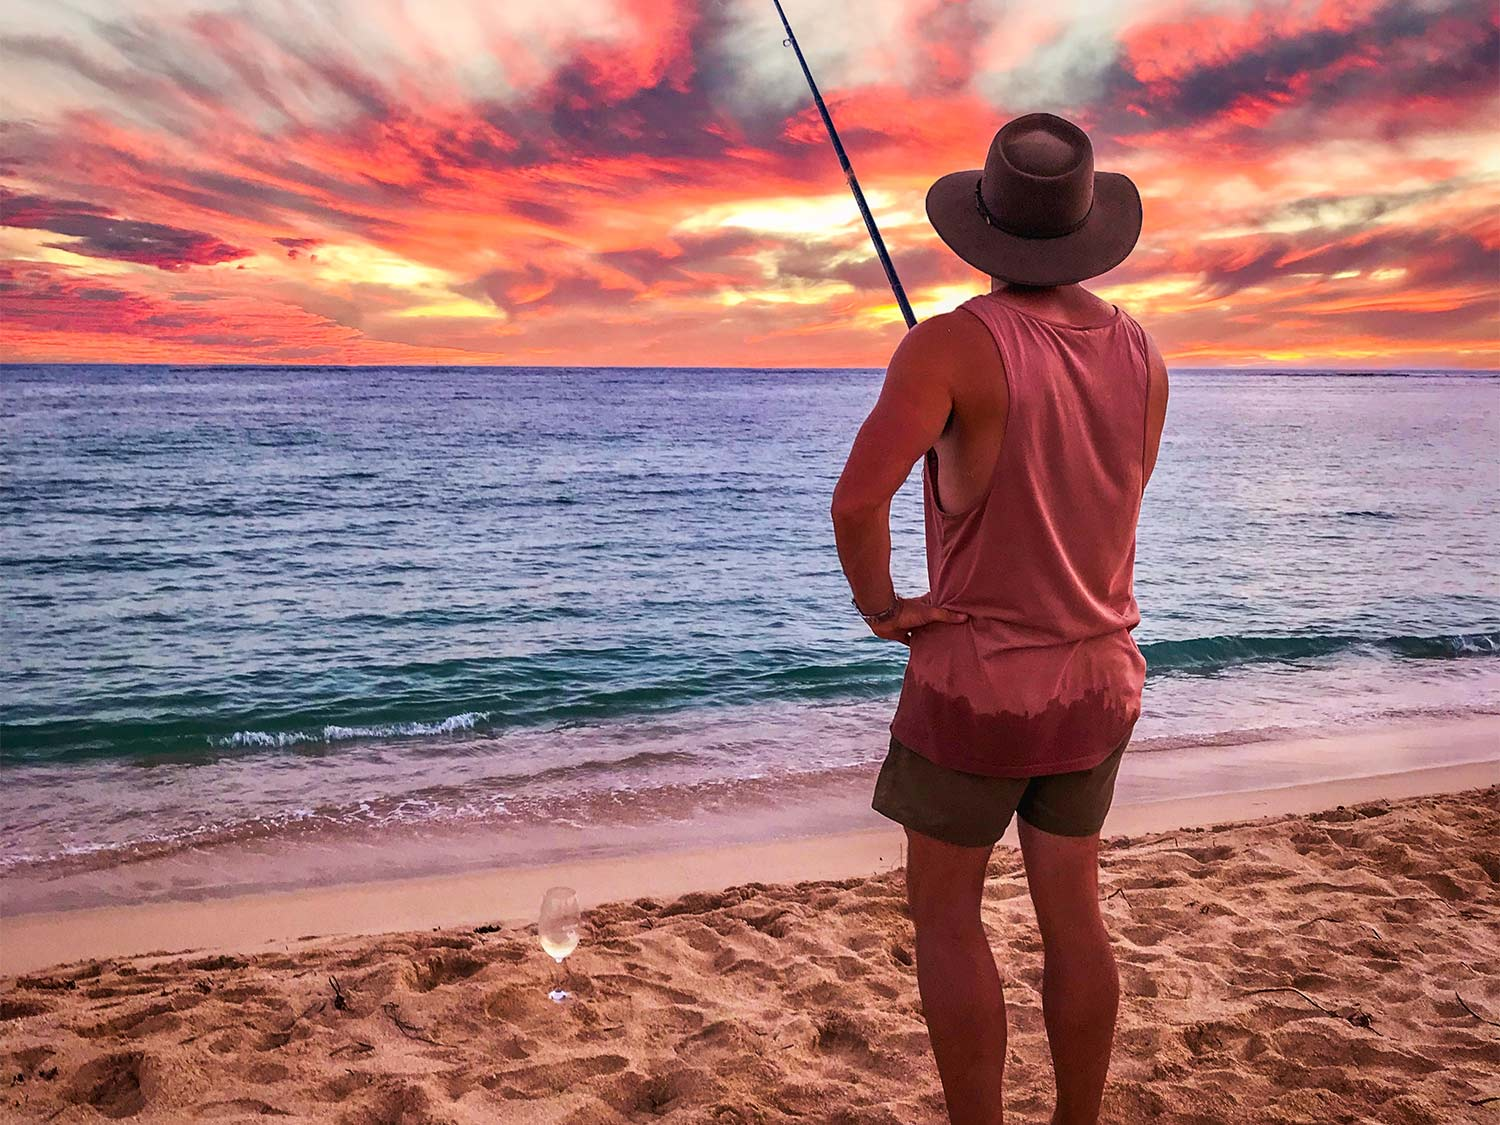 A man wearing the best fishing hat stands on the shores of the beach and fishes.